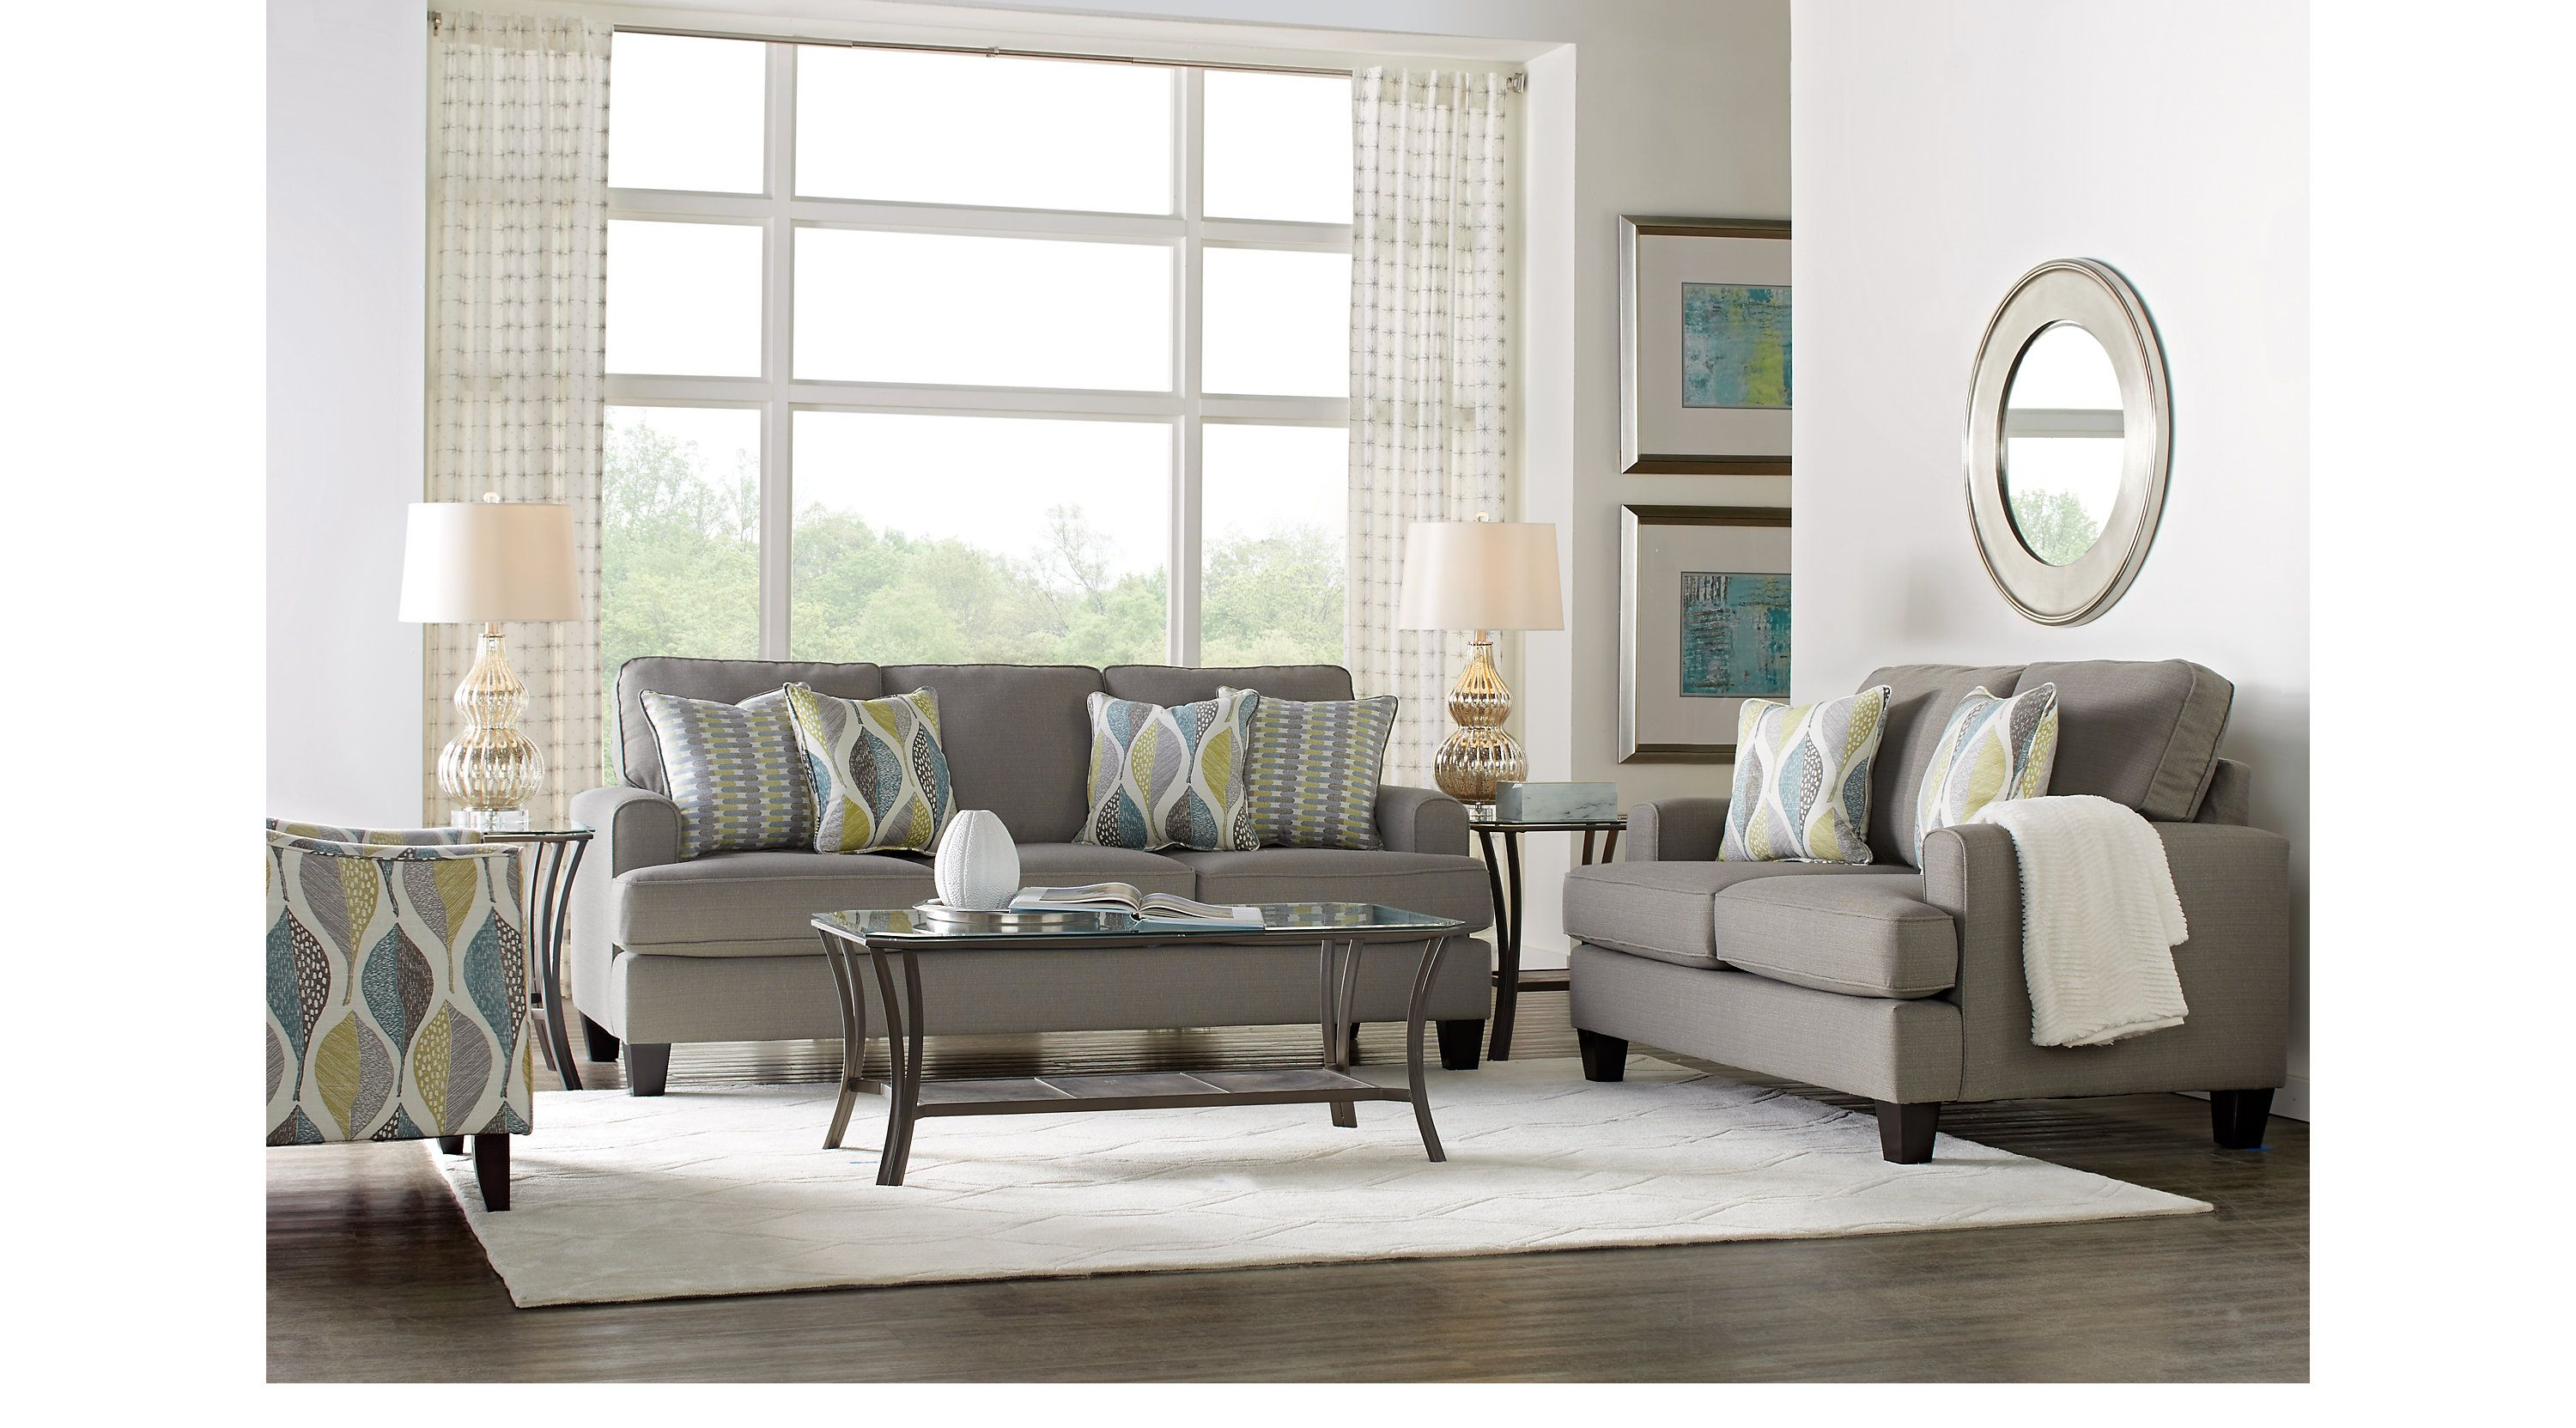 Cypress Gardens Gray 5 Pc Living Room  Living Room